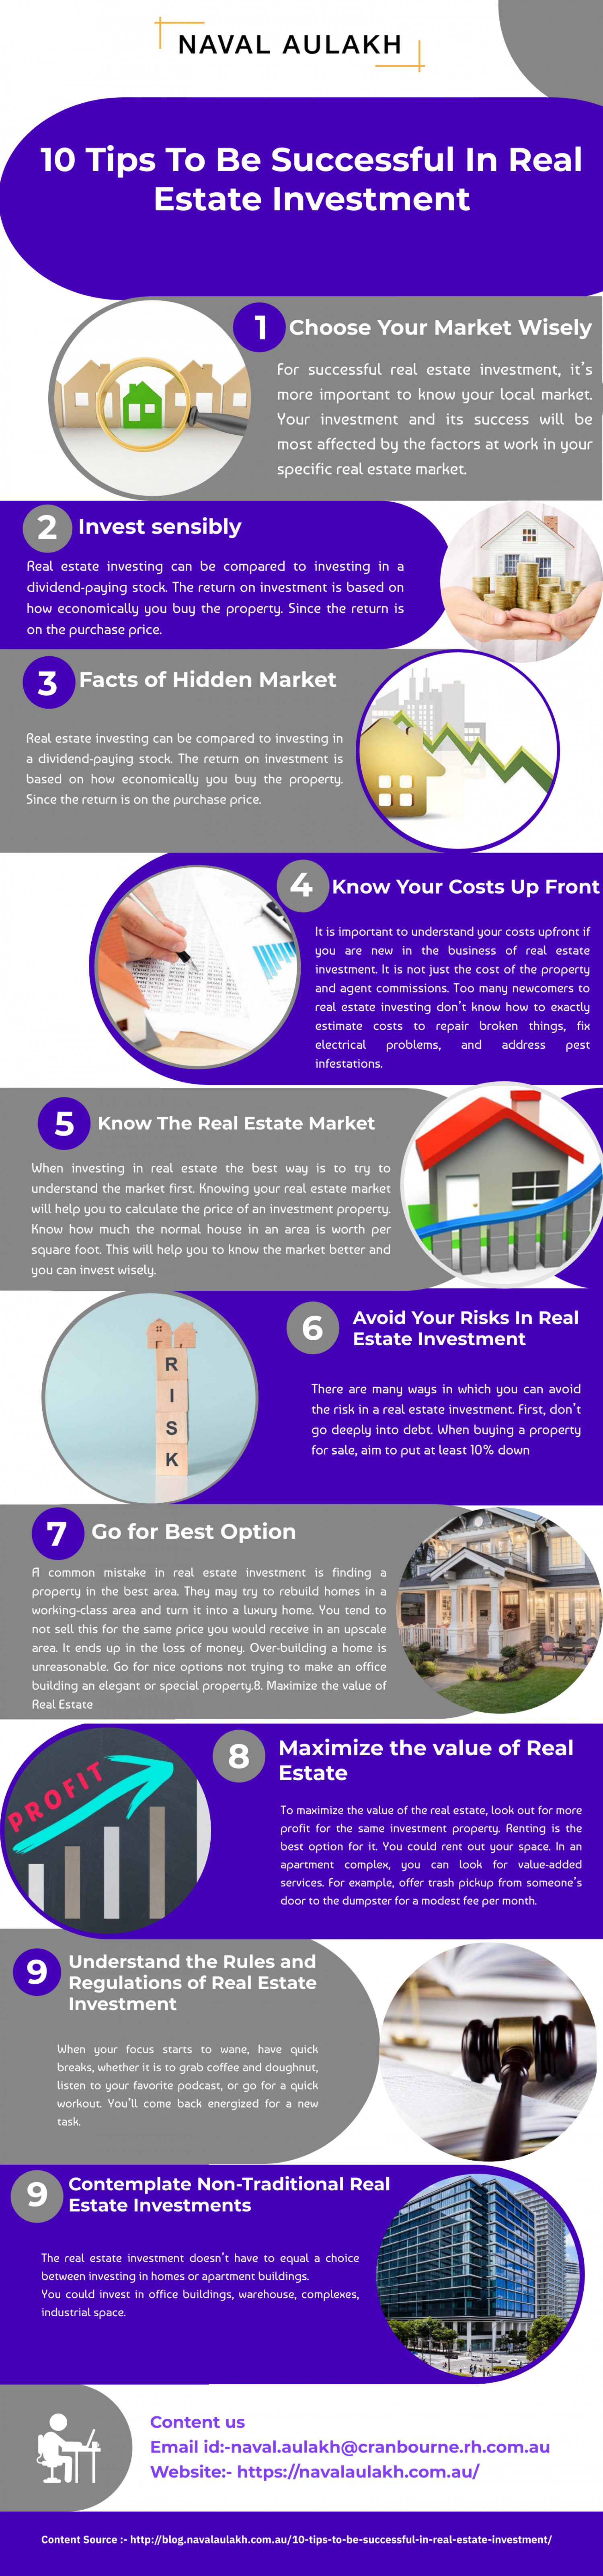 10 Tips To Be Successful In Real Estate Investment Infographic